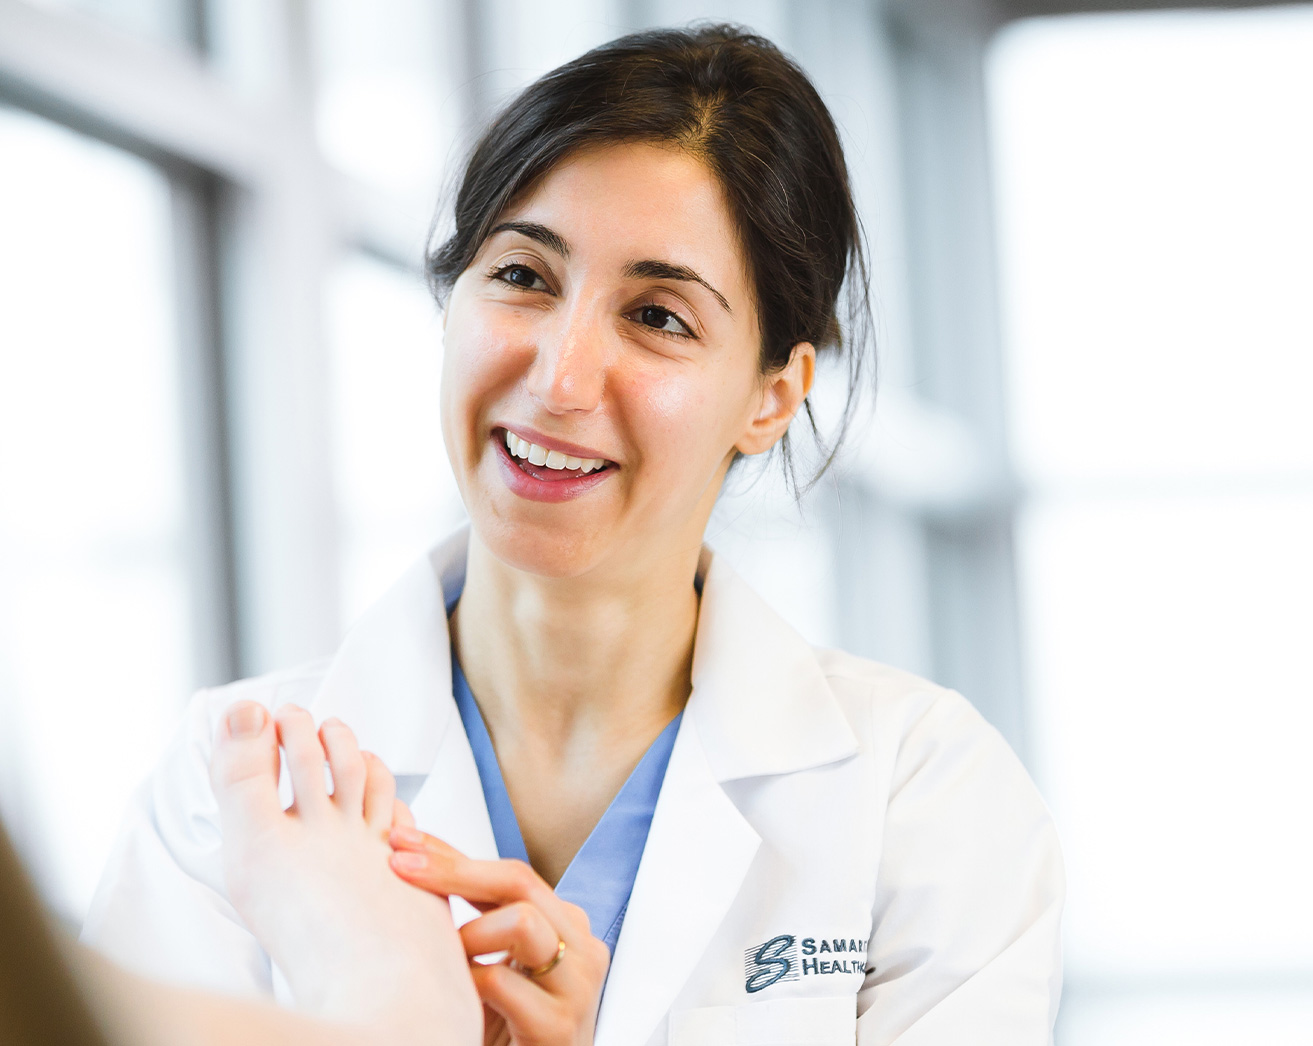 Smiling Dr. Arezou Amidi, examines patient's foot.